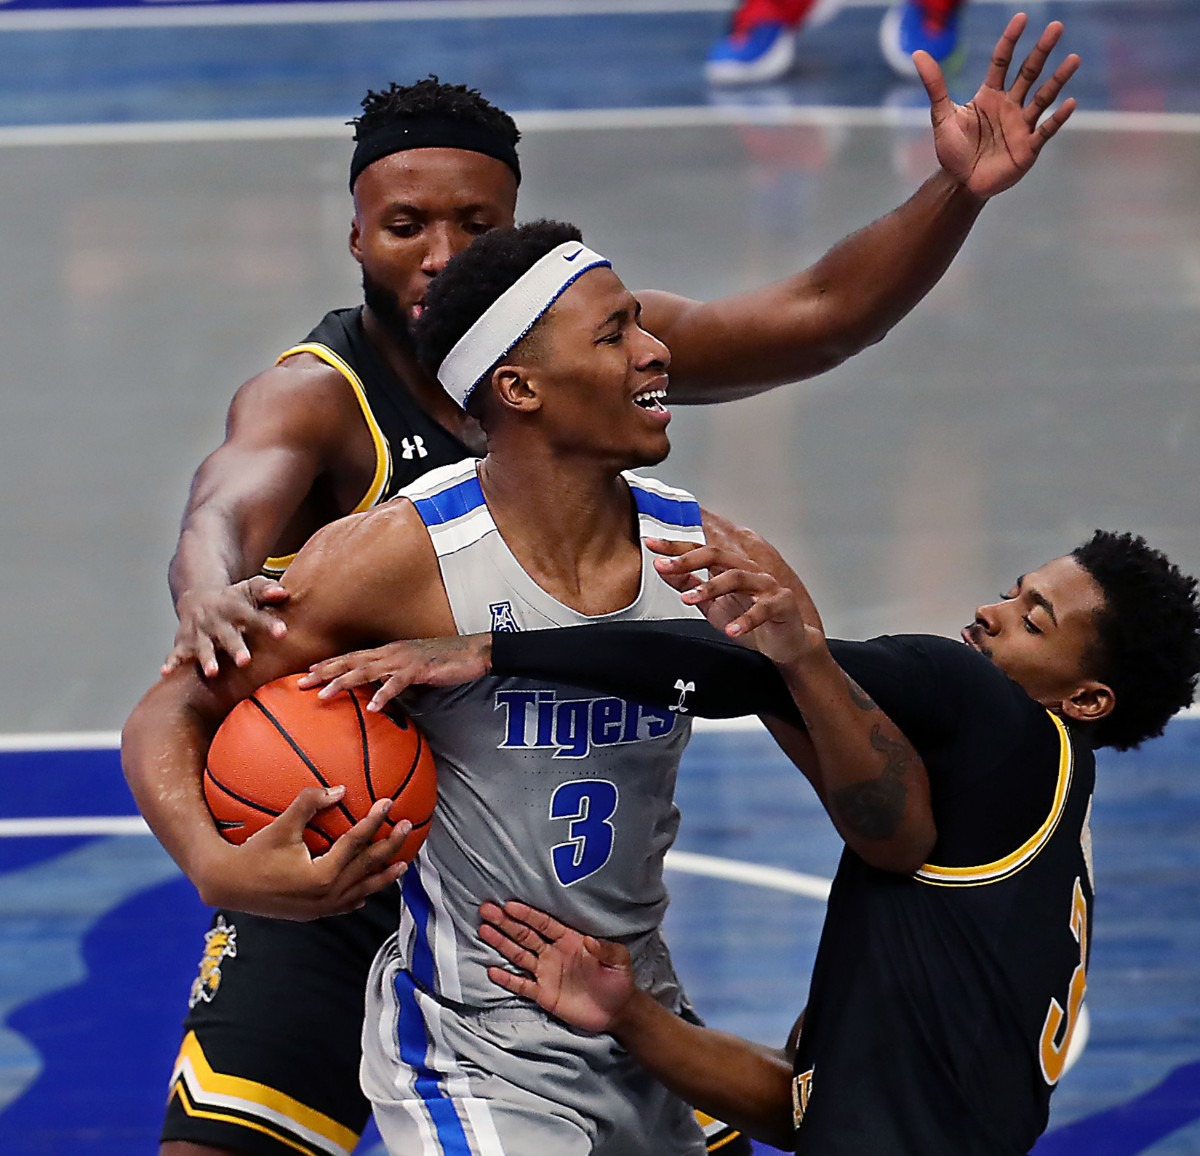 <strong>University of Memphis guard Landers Nolley II (3) is surrounded by a pair of Wichita State Shockers players on Jan. 21, 2021, at FedExForum.</strong> (Patrick Lantrip/Daily Memphian)